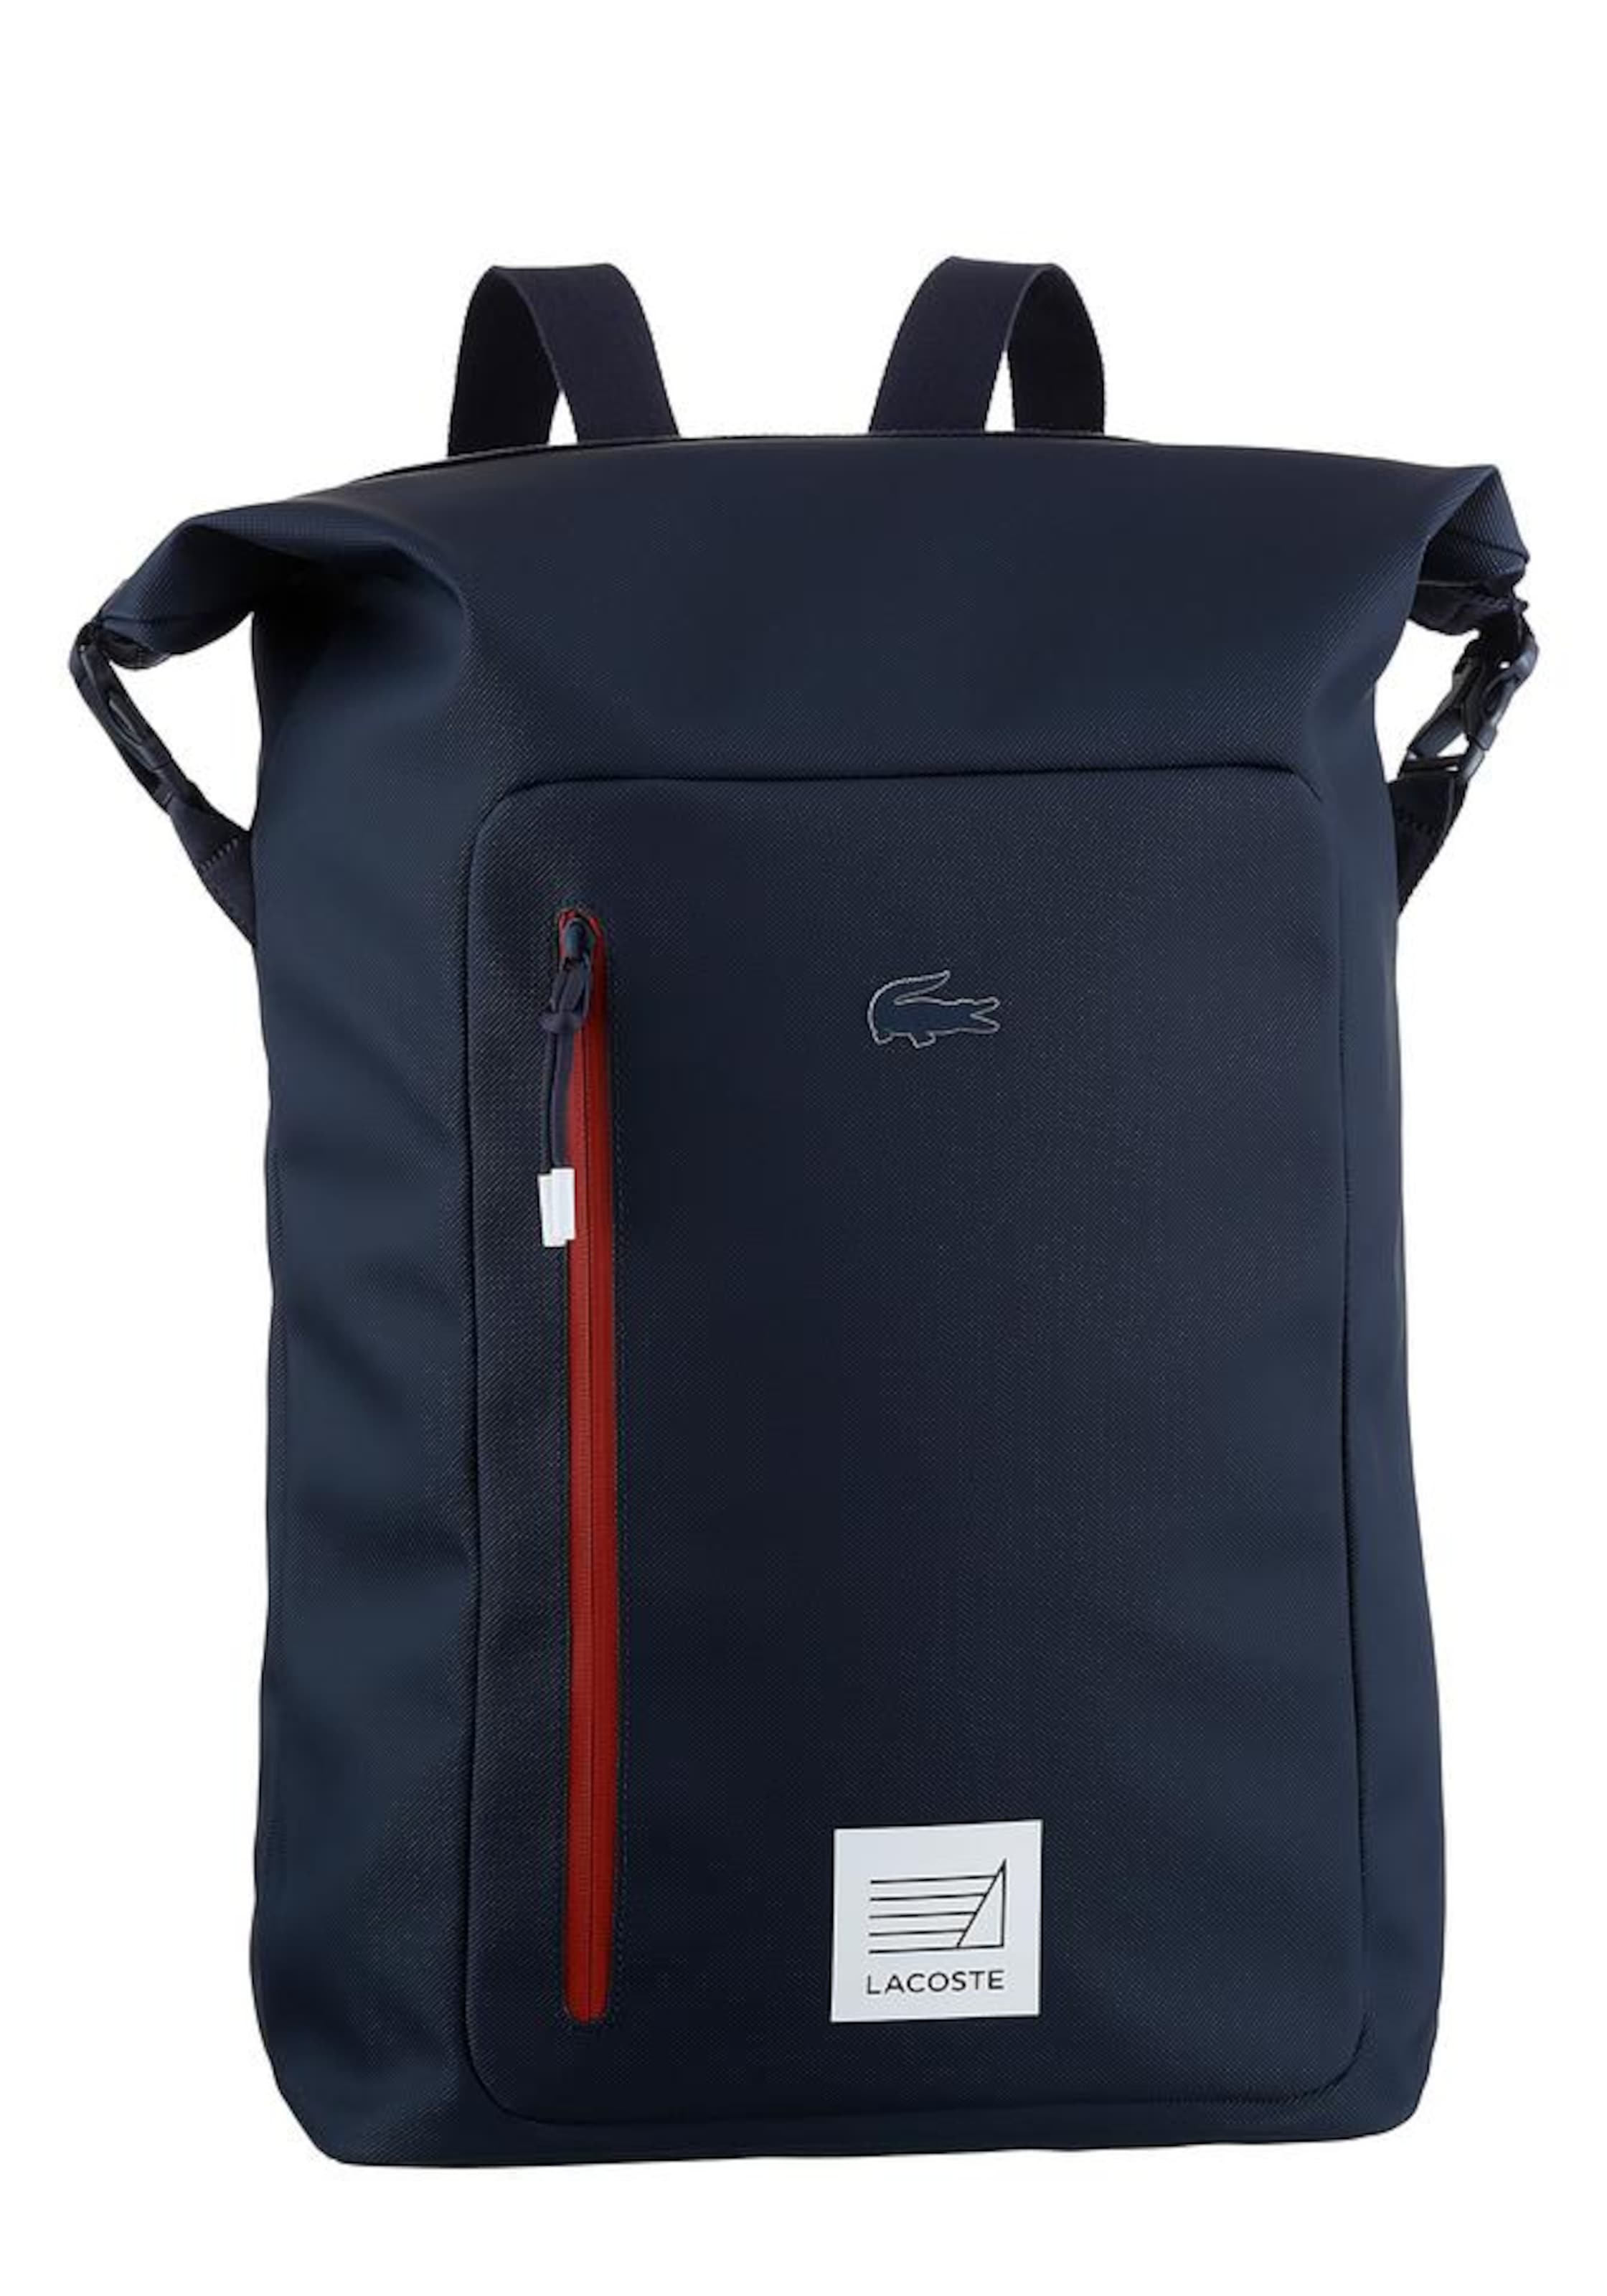 2623d45f329f3 Rucksack In 12 NavyRot 12 Fantaisie   l Lacoste Concept pqMSUzV